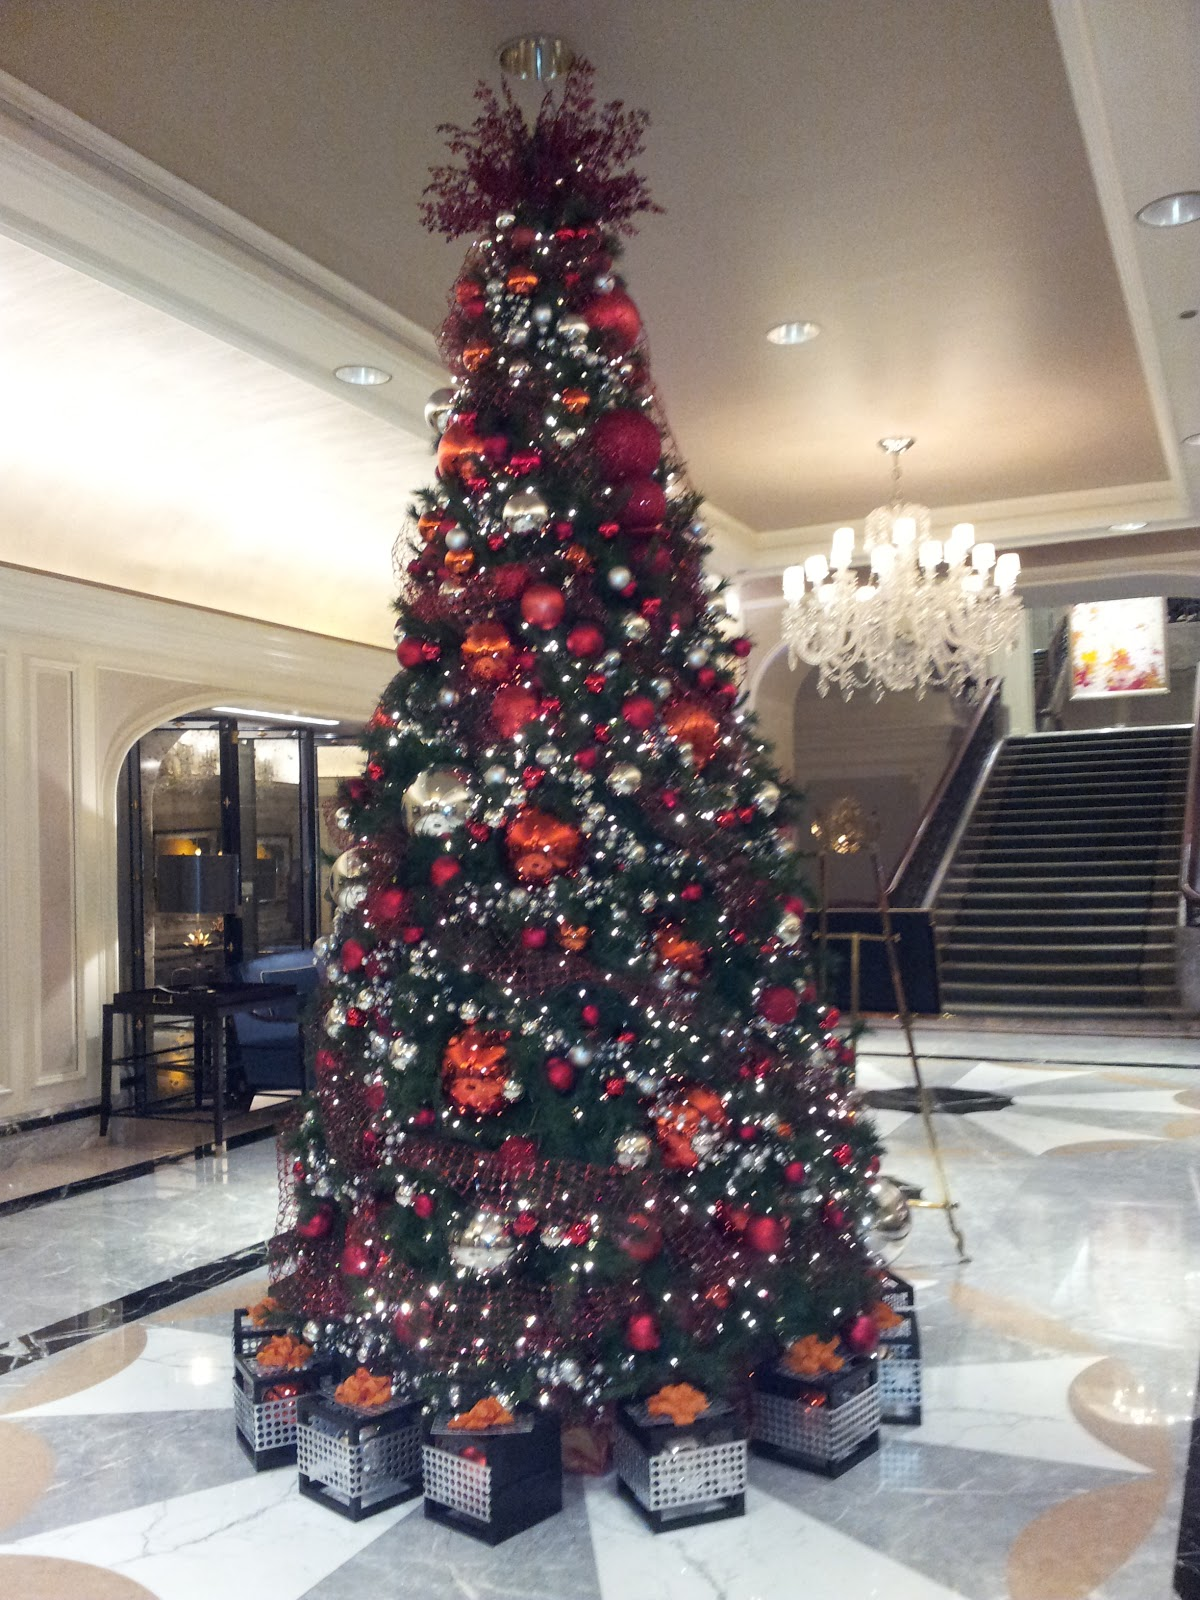 the fifteenth day of chicago christmas trees comes from union station the waldorf astoria the hilton suites the knickerbocker hotel the allerton hotel - Chicago Christmas Station